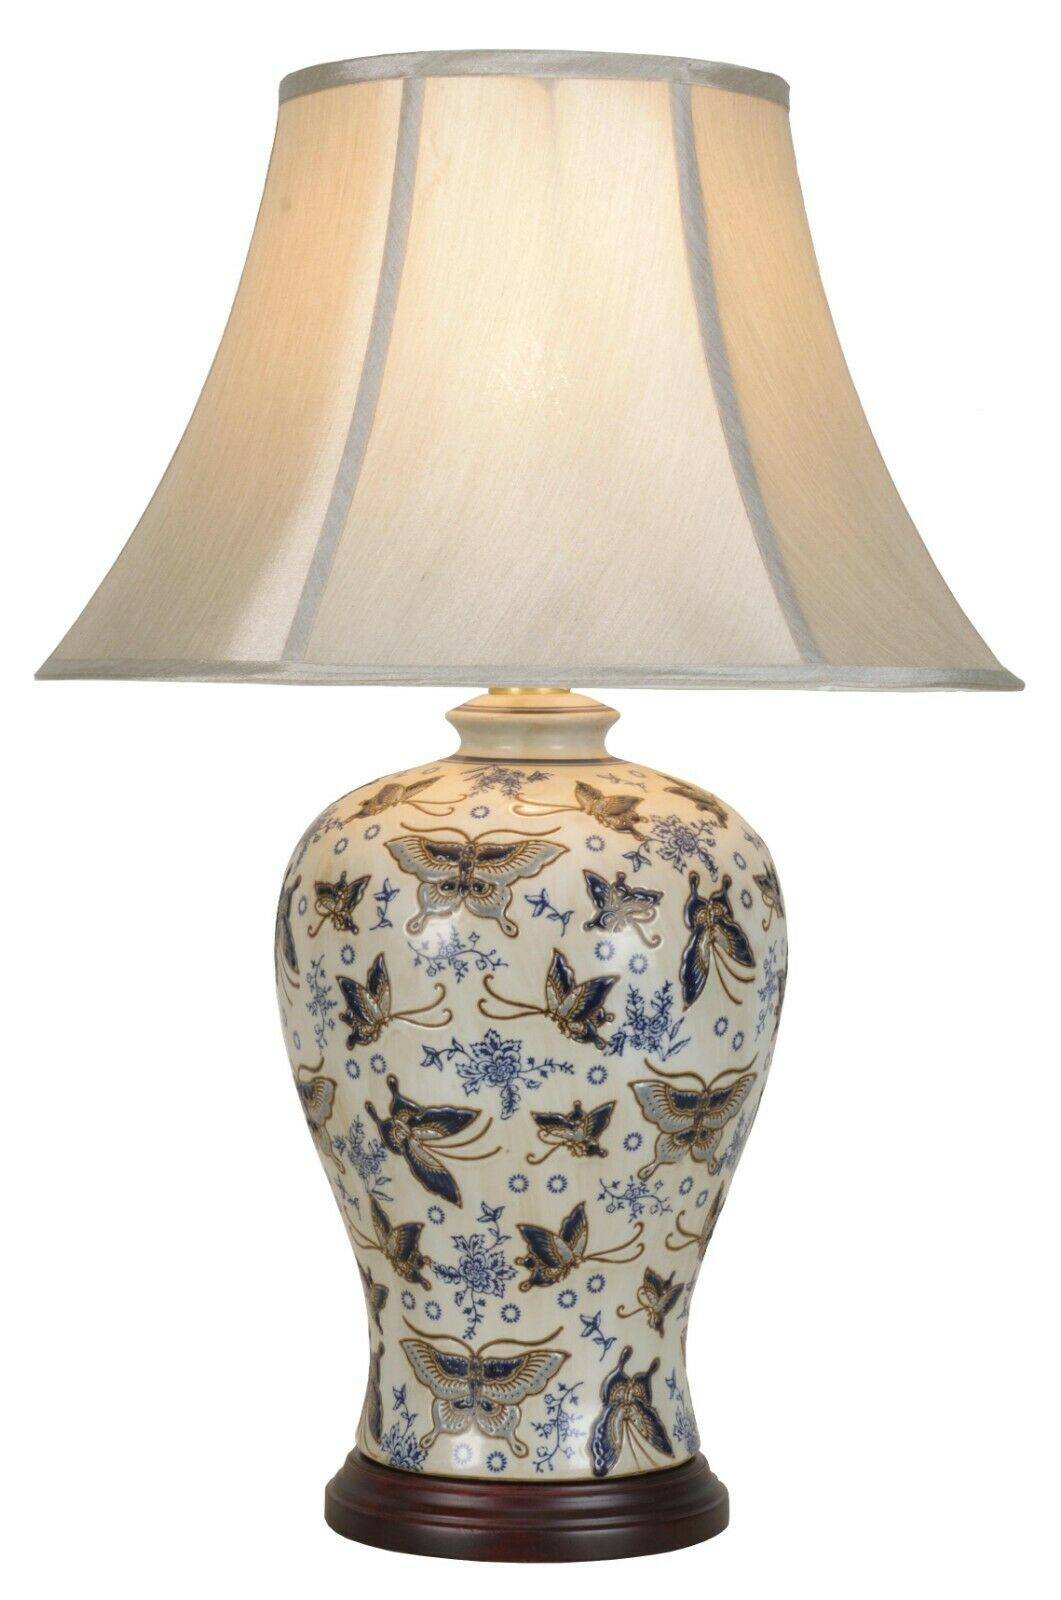 NOW £40 OFF - Ivory Butterfly Chinese Ceramic Porcelain Table Lamp (M9422)